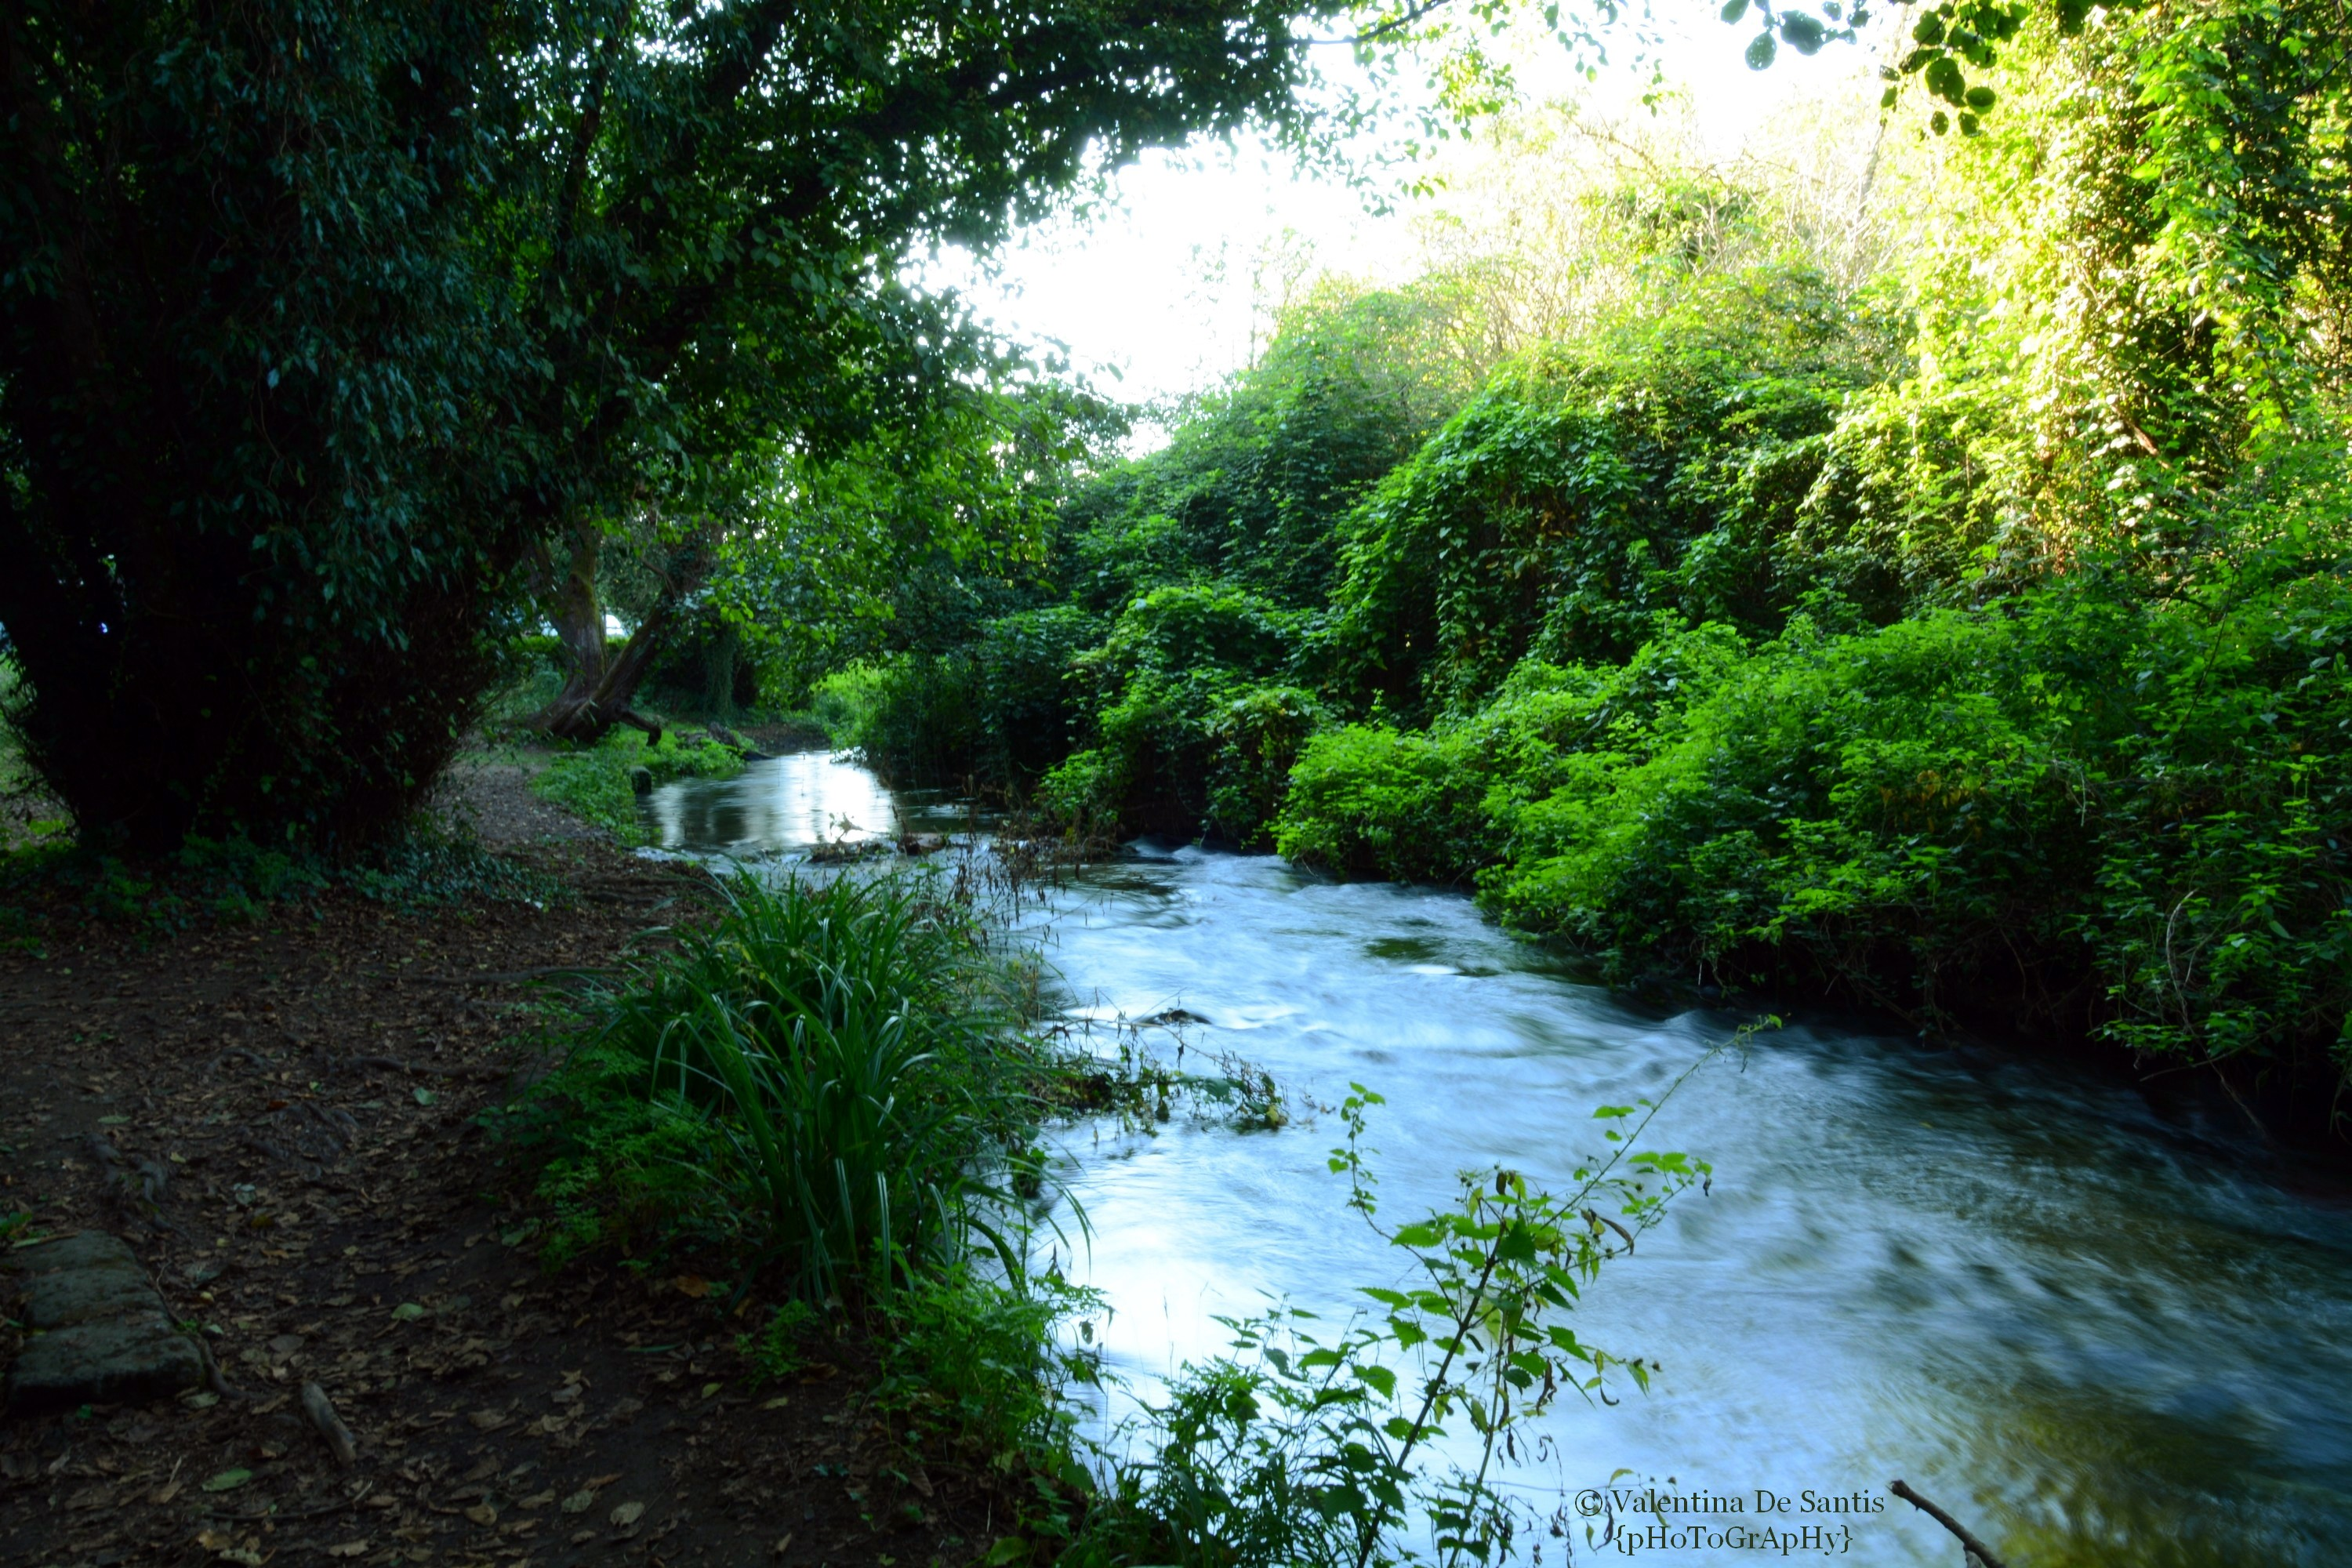 Valley of Treja, the river